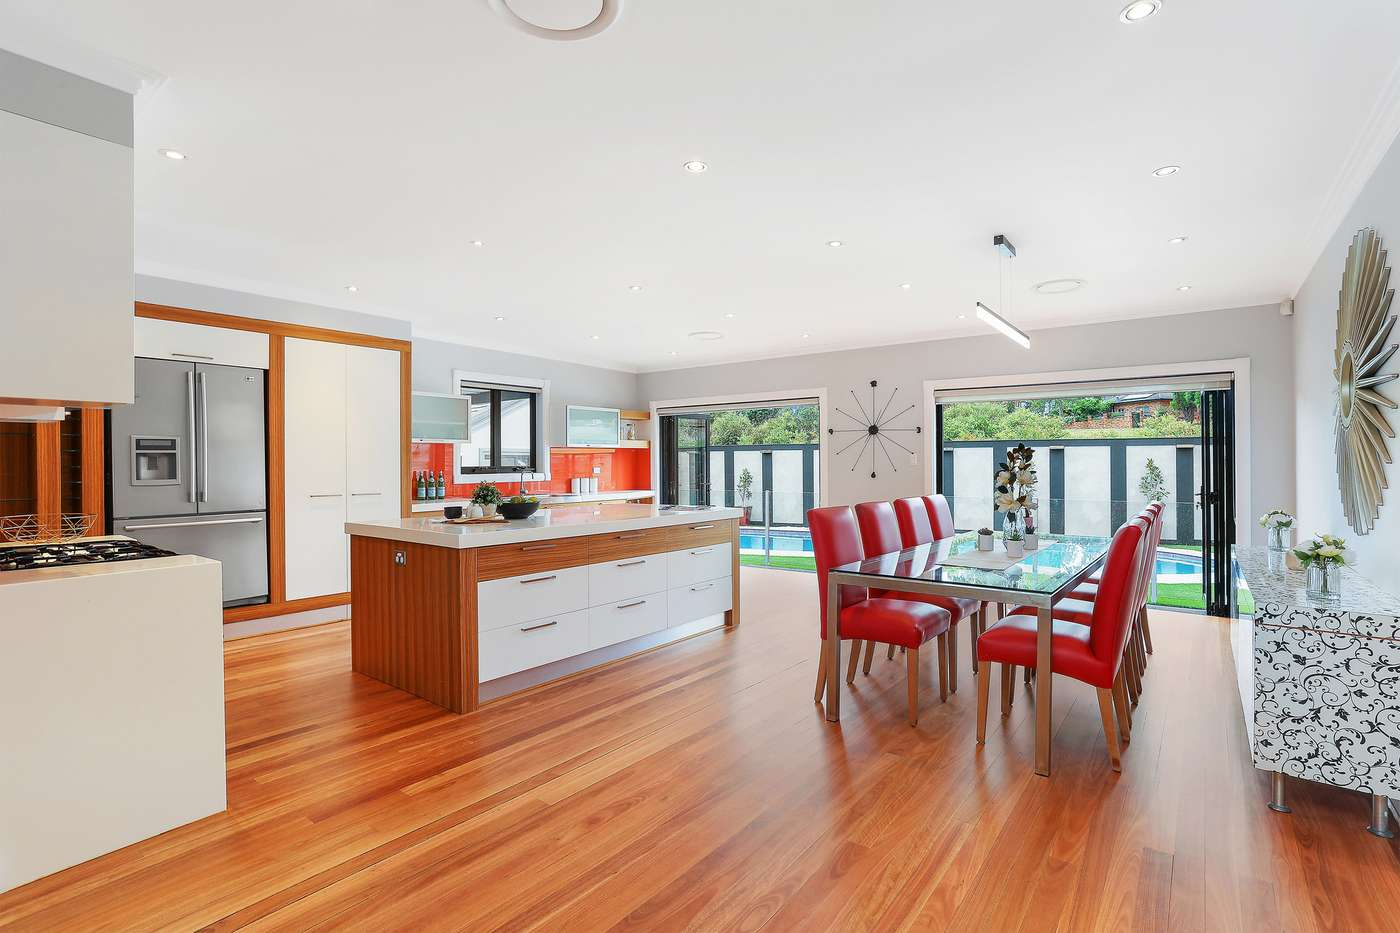 Main view of Homely house listing, 36 Walsh Avenue, Croydon Park, NSW 2133